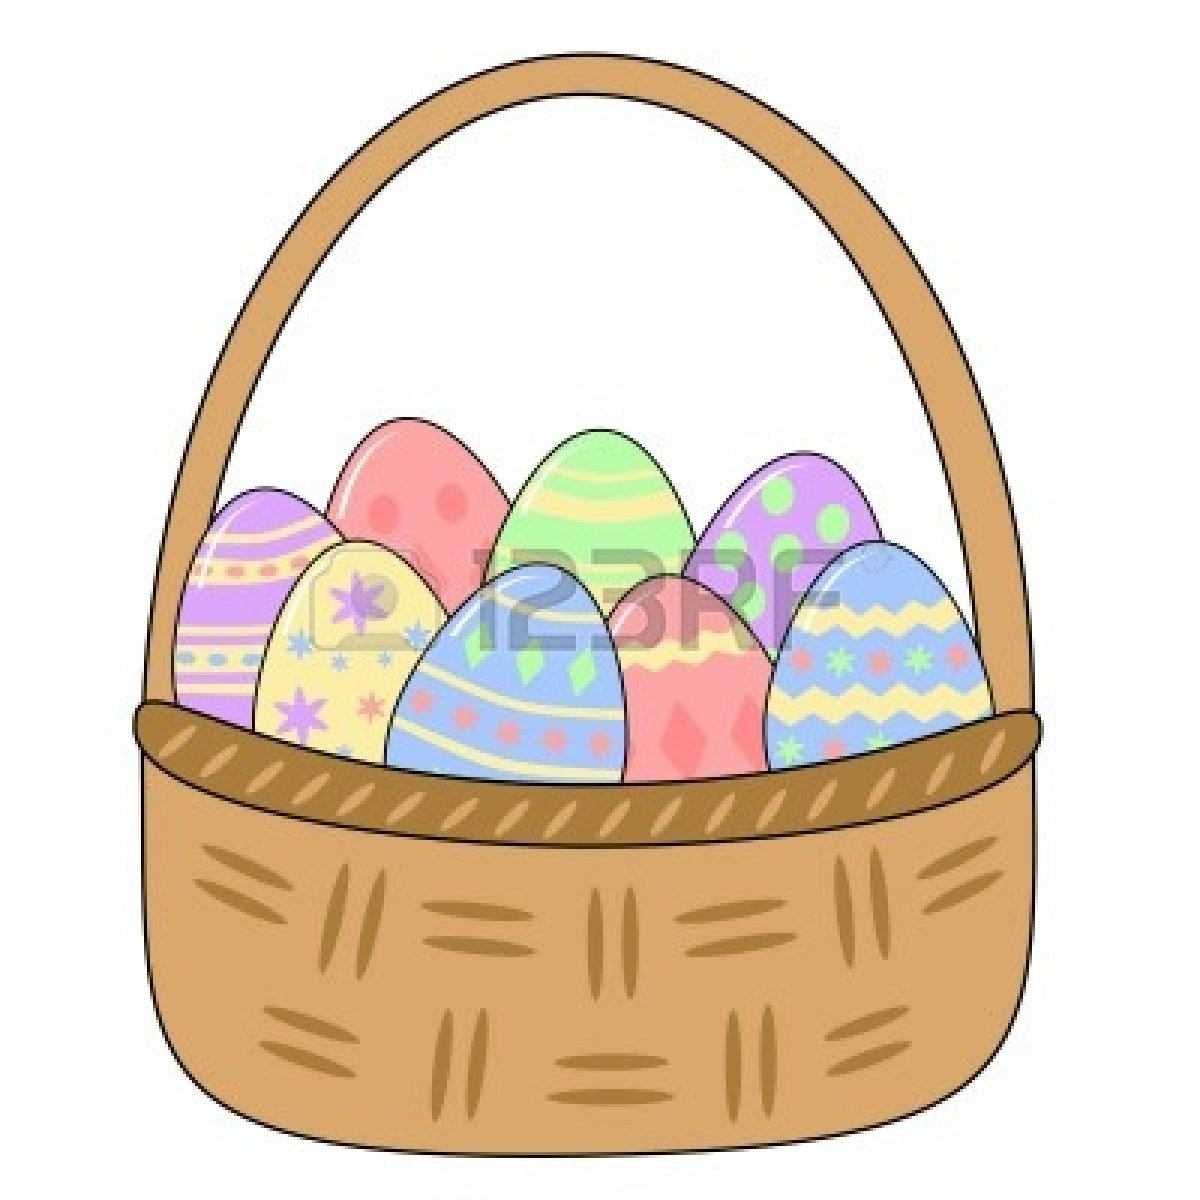 Images of Baskets For Easter Eggs.